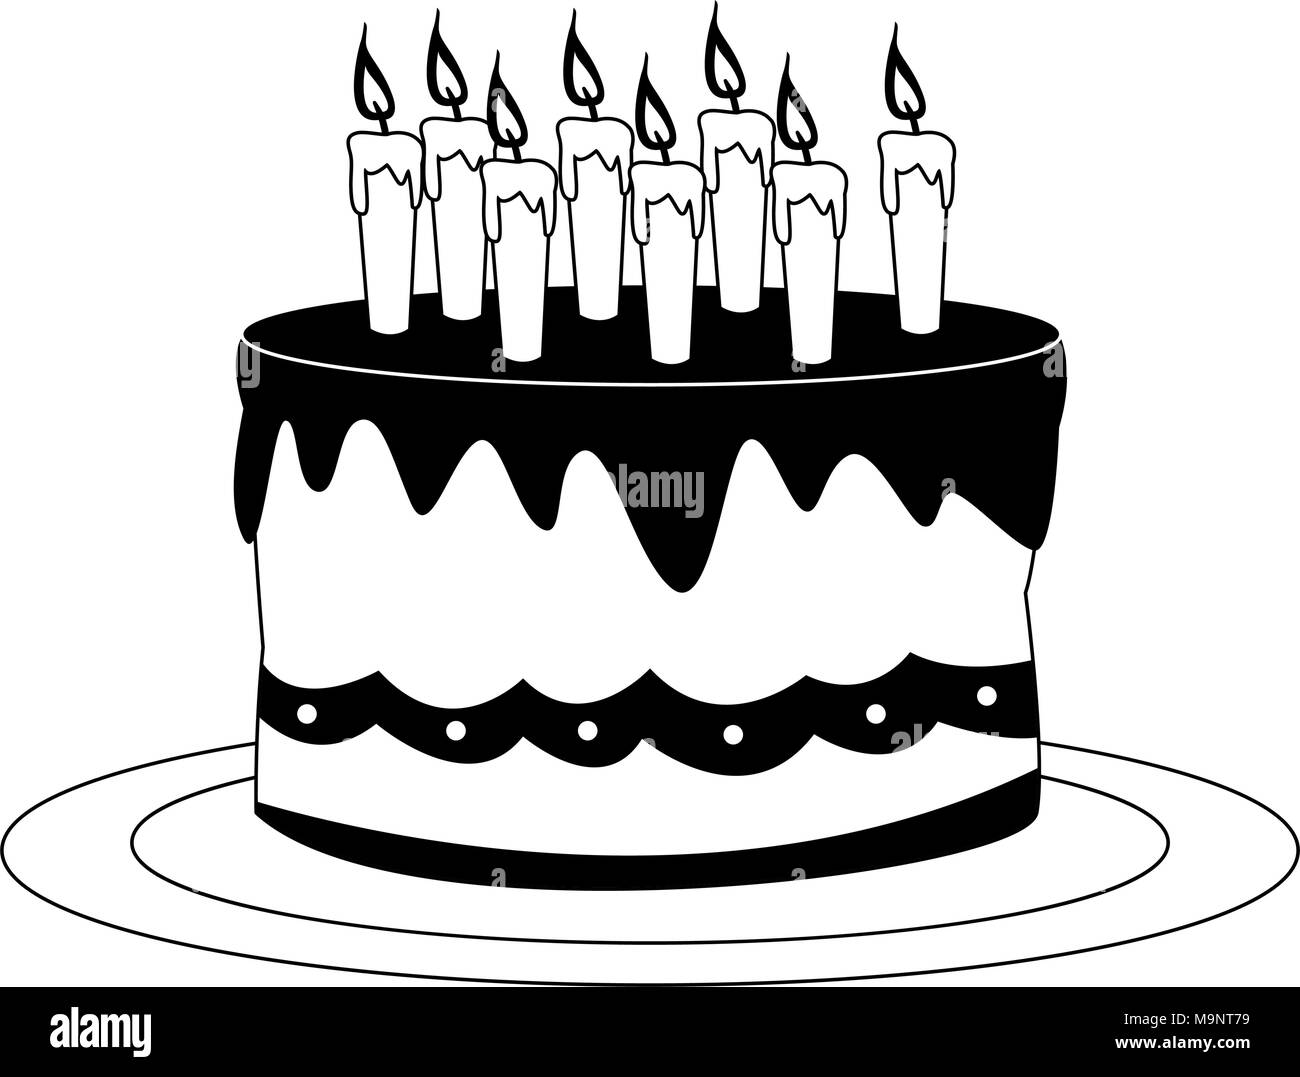 Fabulous Birthday Cake Illustration Black And White Stock Photos Images Funny Birthday Cards Online Alyptdamsfinfo